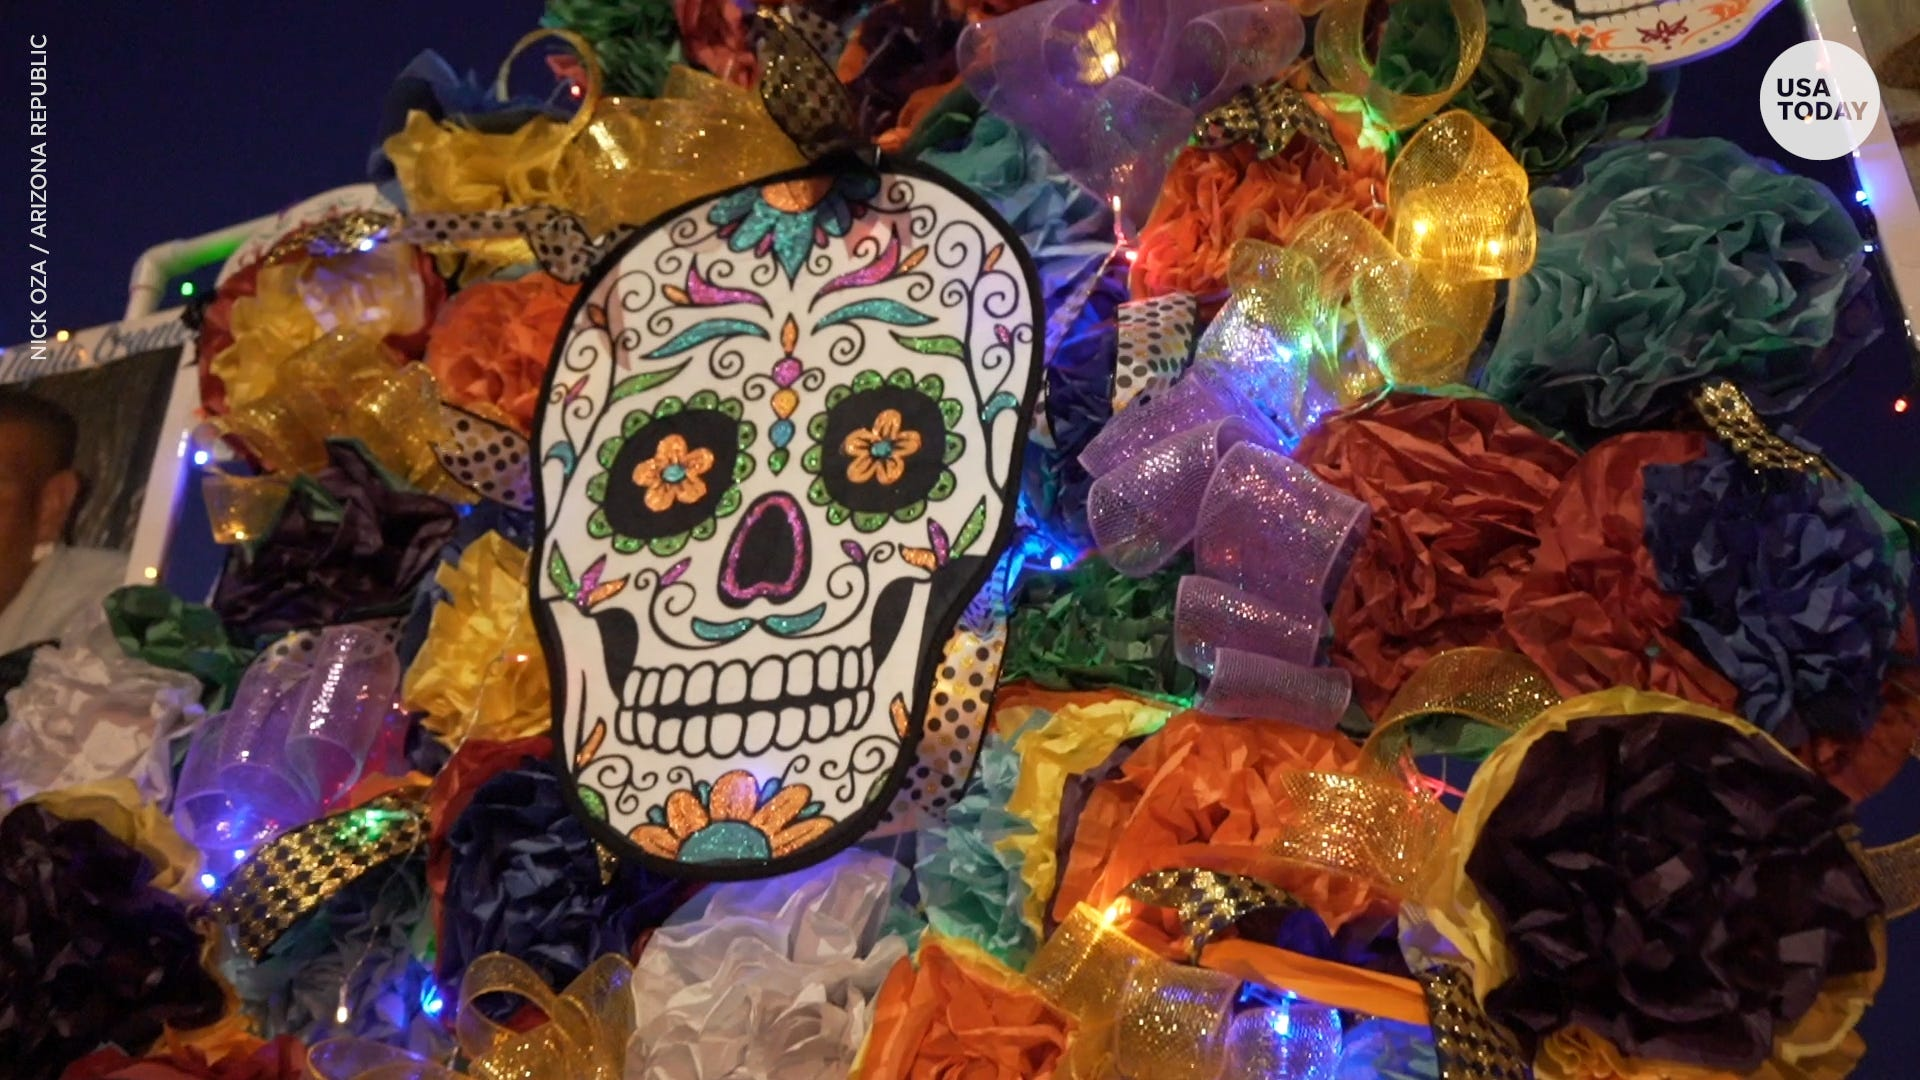 Dia de los Muertos, Day of the Dead, is a time to remember loved ones' lives